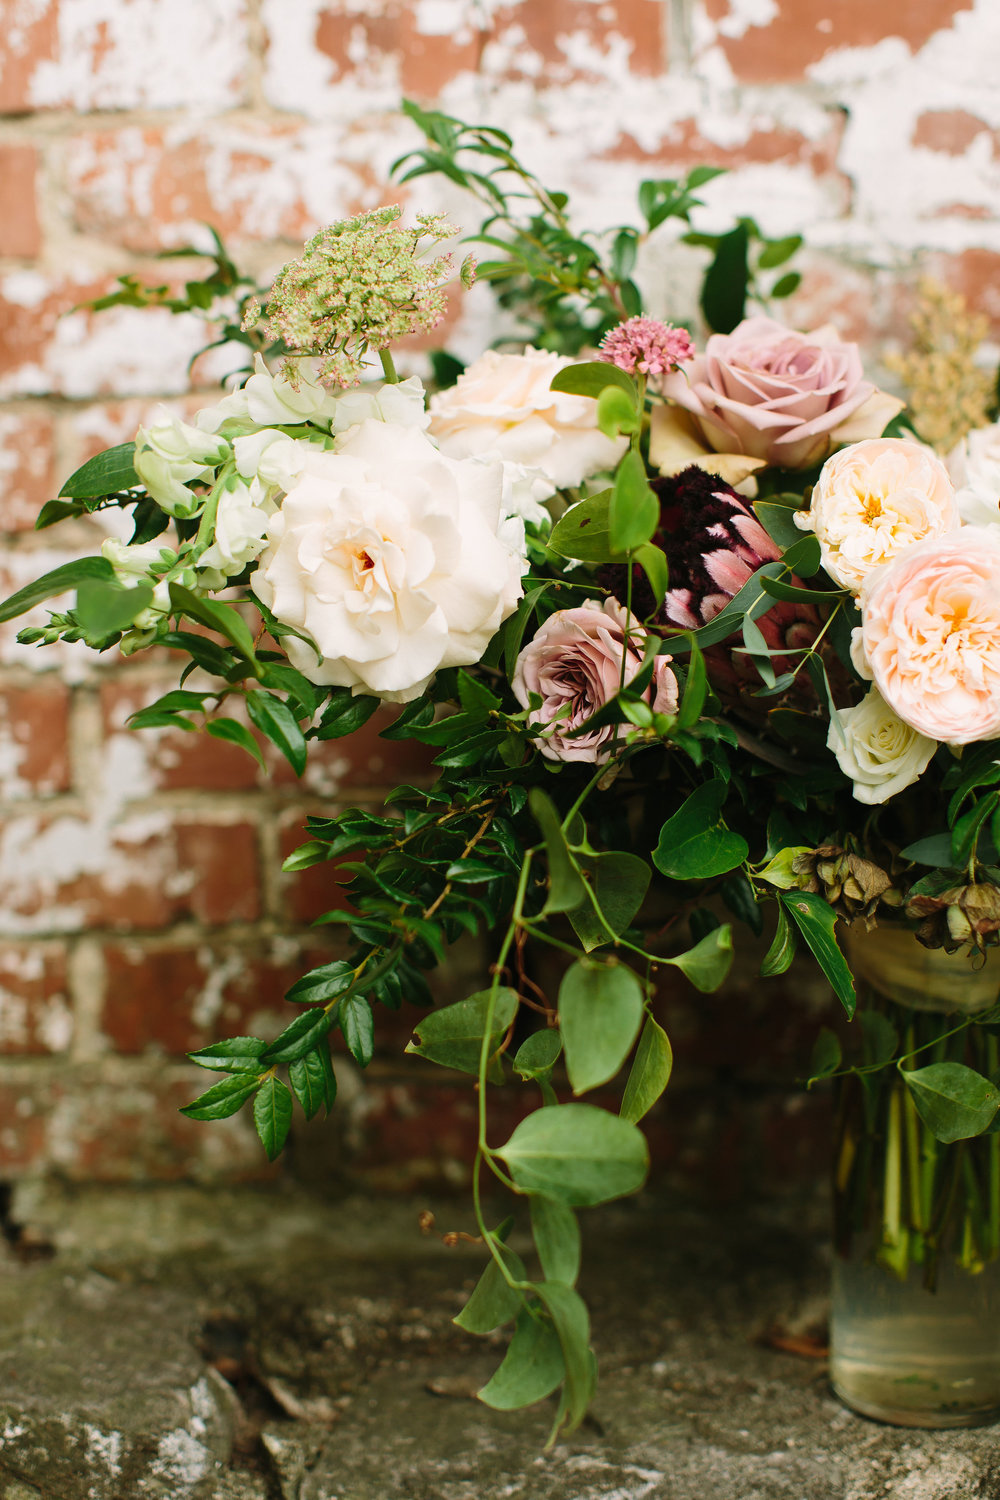 Lush bridal bouquet with garden roses and ranunculus in hues of cream and dusty mauve // Nashville Wedding Floral Design